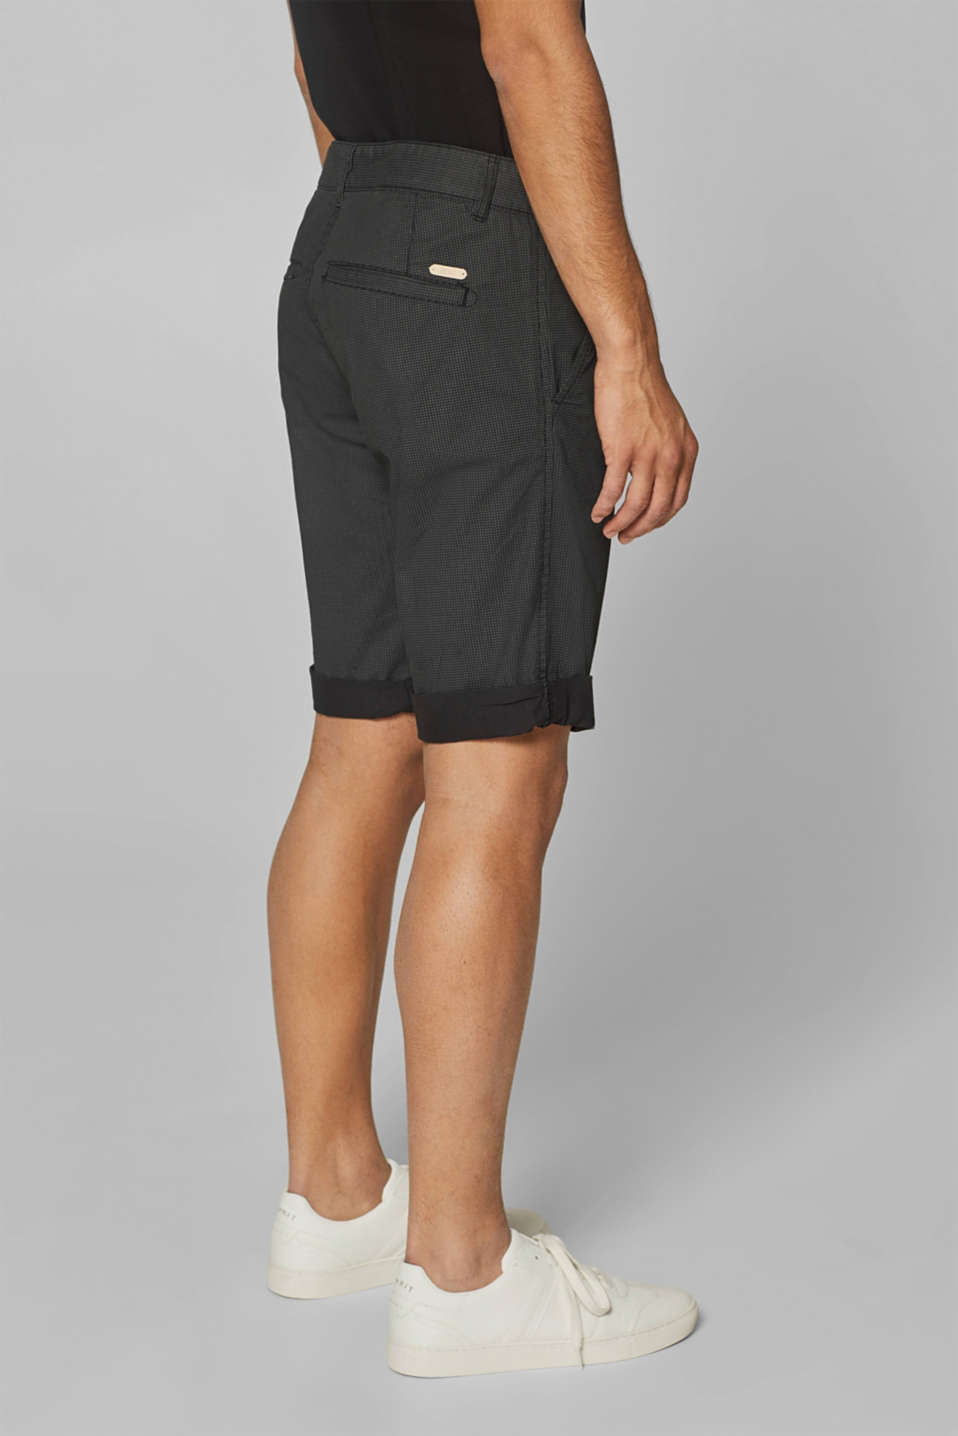 Shorts woven Slim fit, ANTHRACITE, detail image number 3